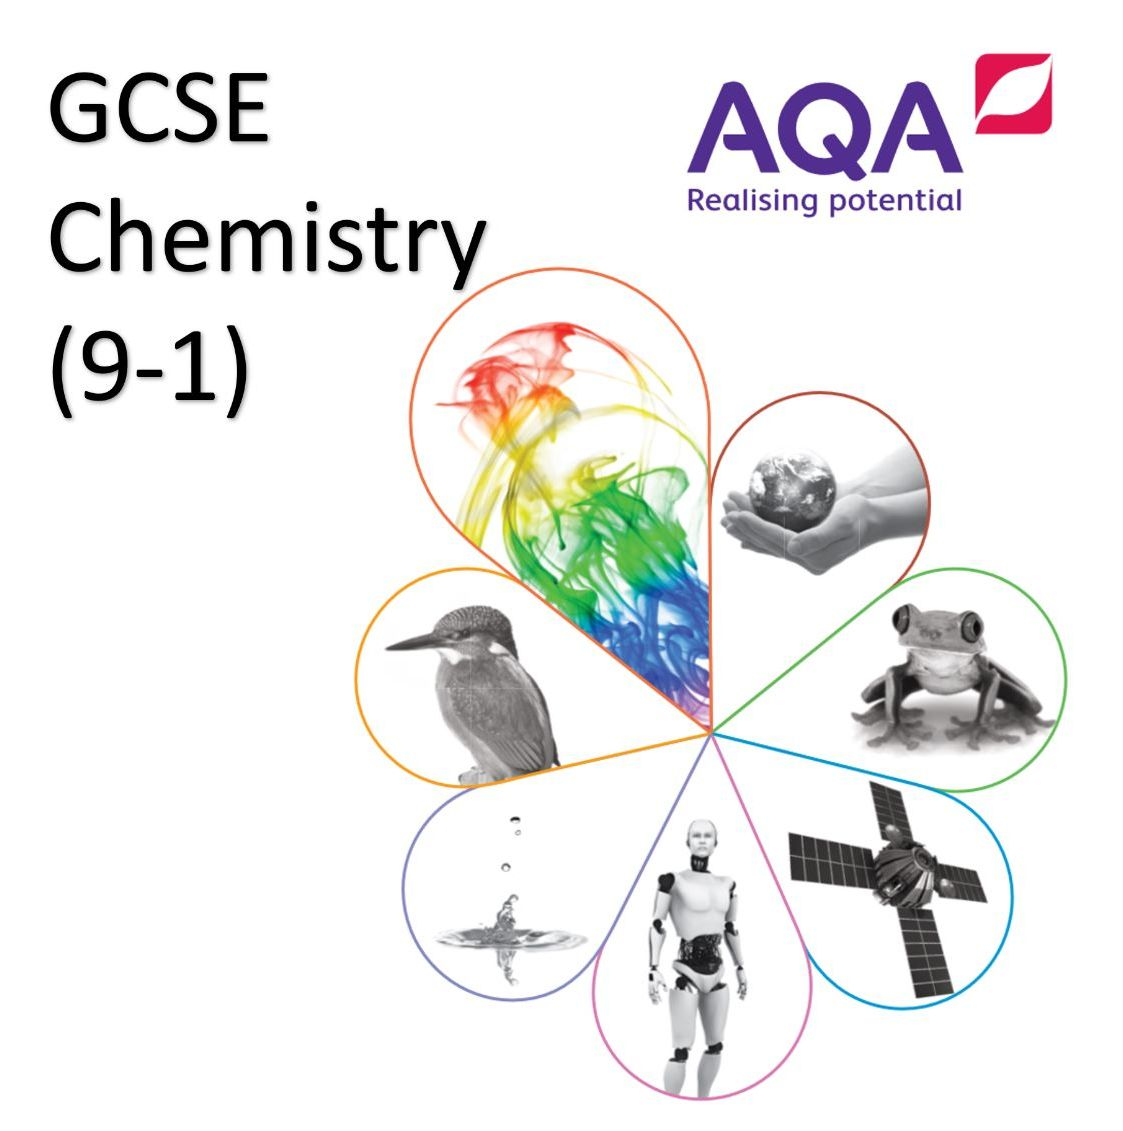 AQA GCSE Chemistry (9-1) Paper 1 Double Science Revision Summary Sheets